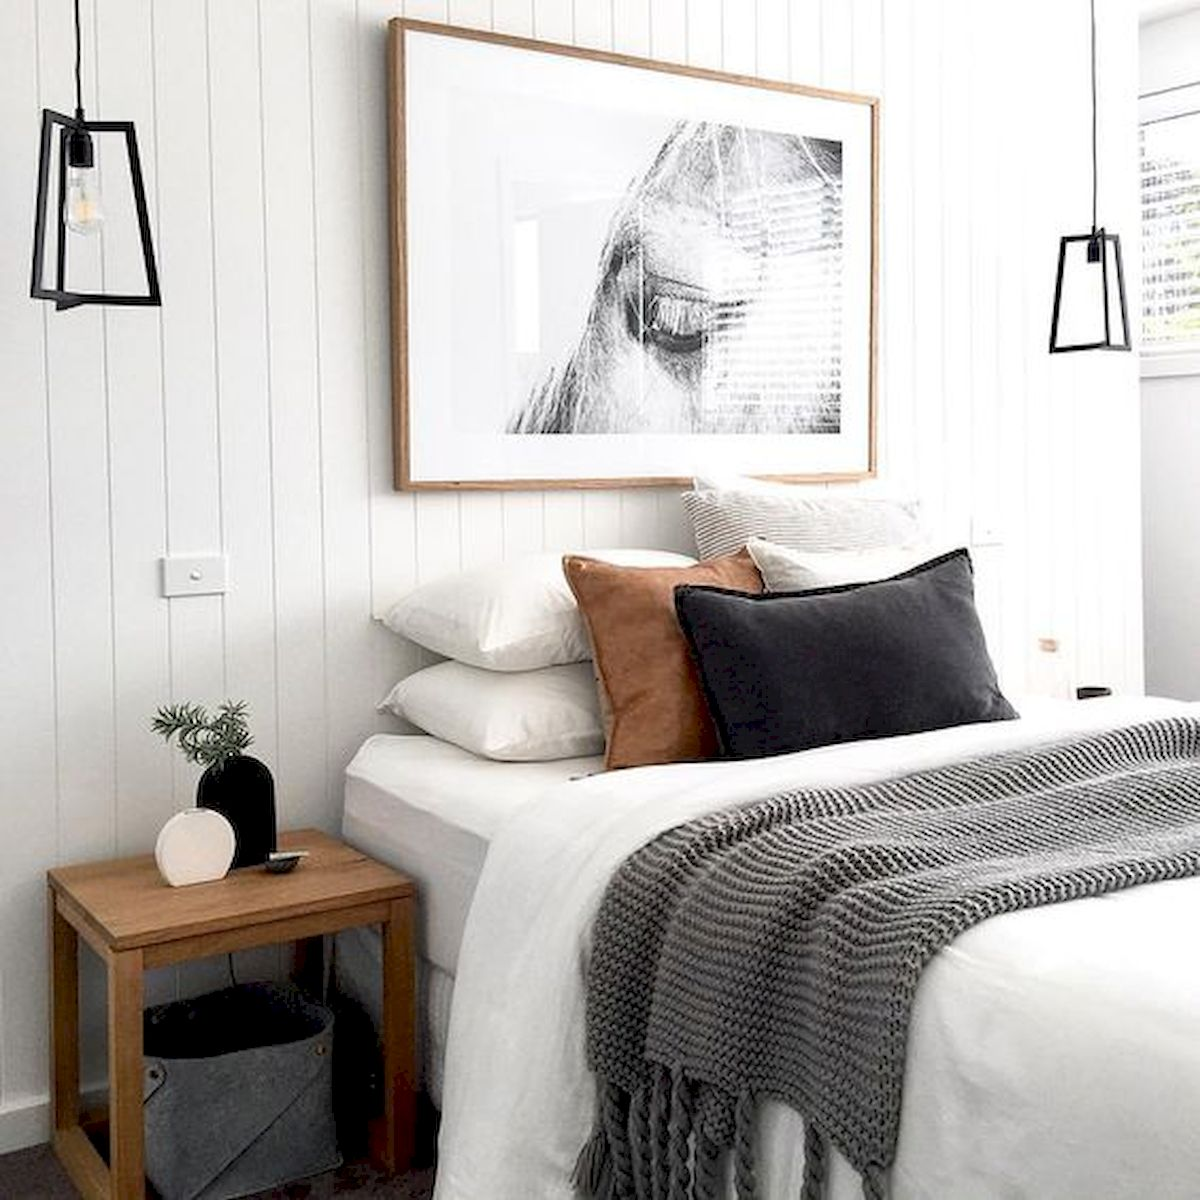 50 Modern Farmhouse Bedroom Decor Ideas Makes You Dream Beautiful In 2019 (31)